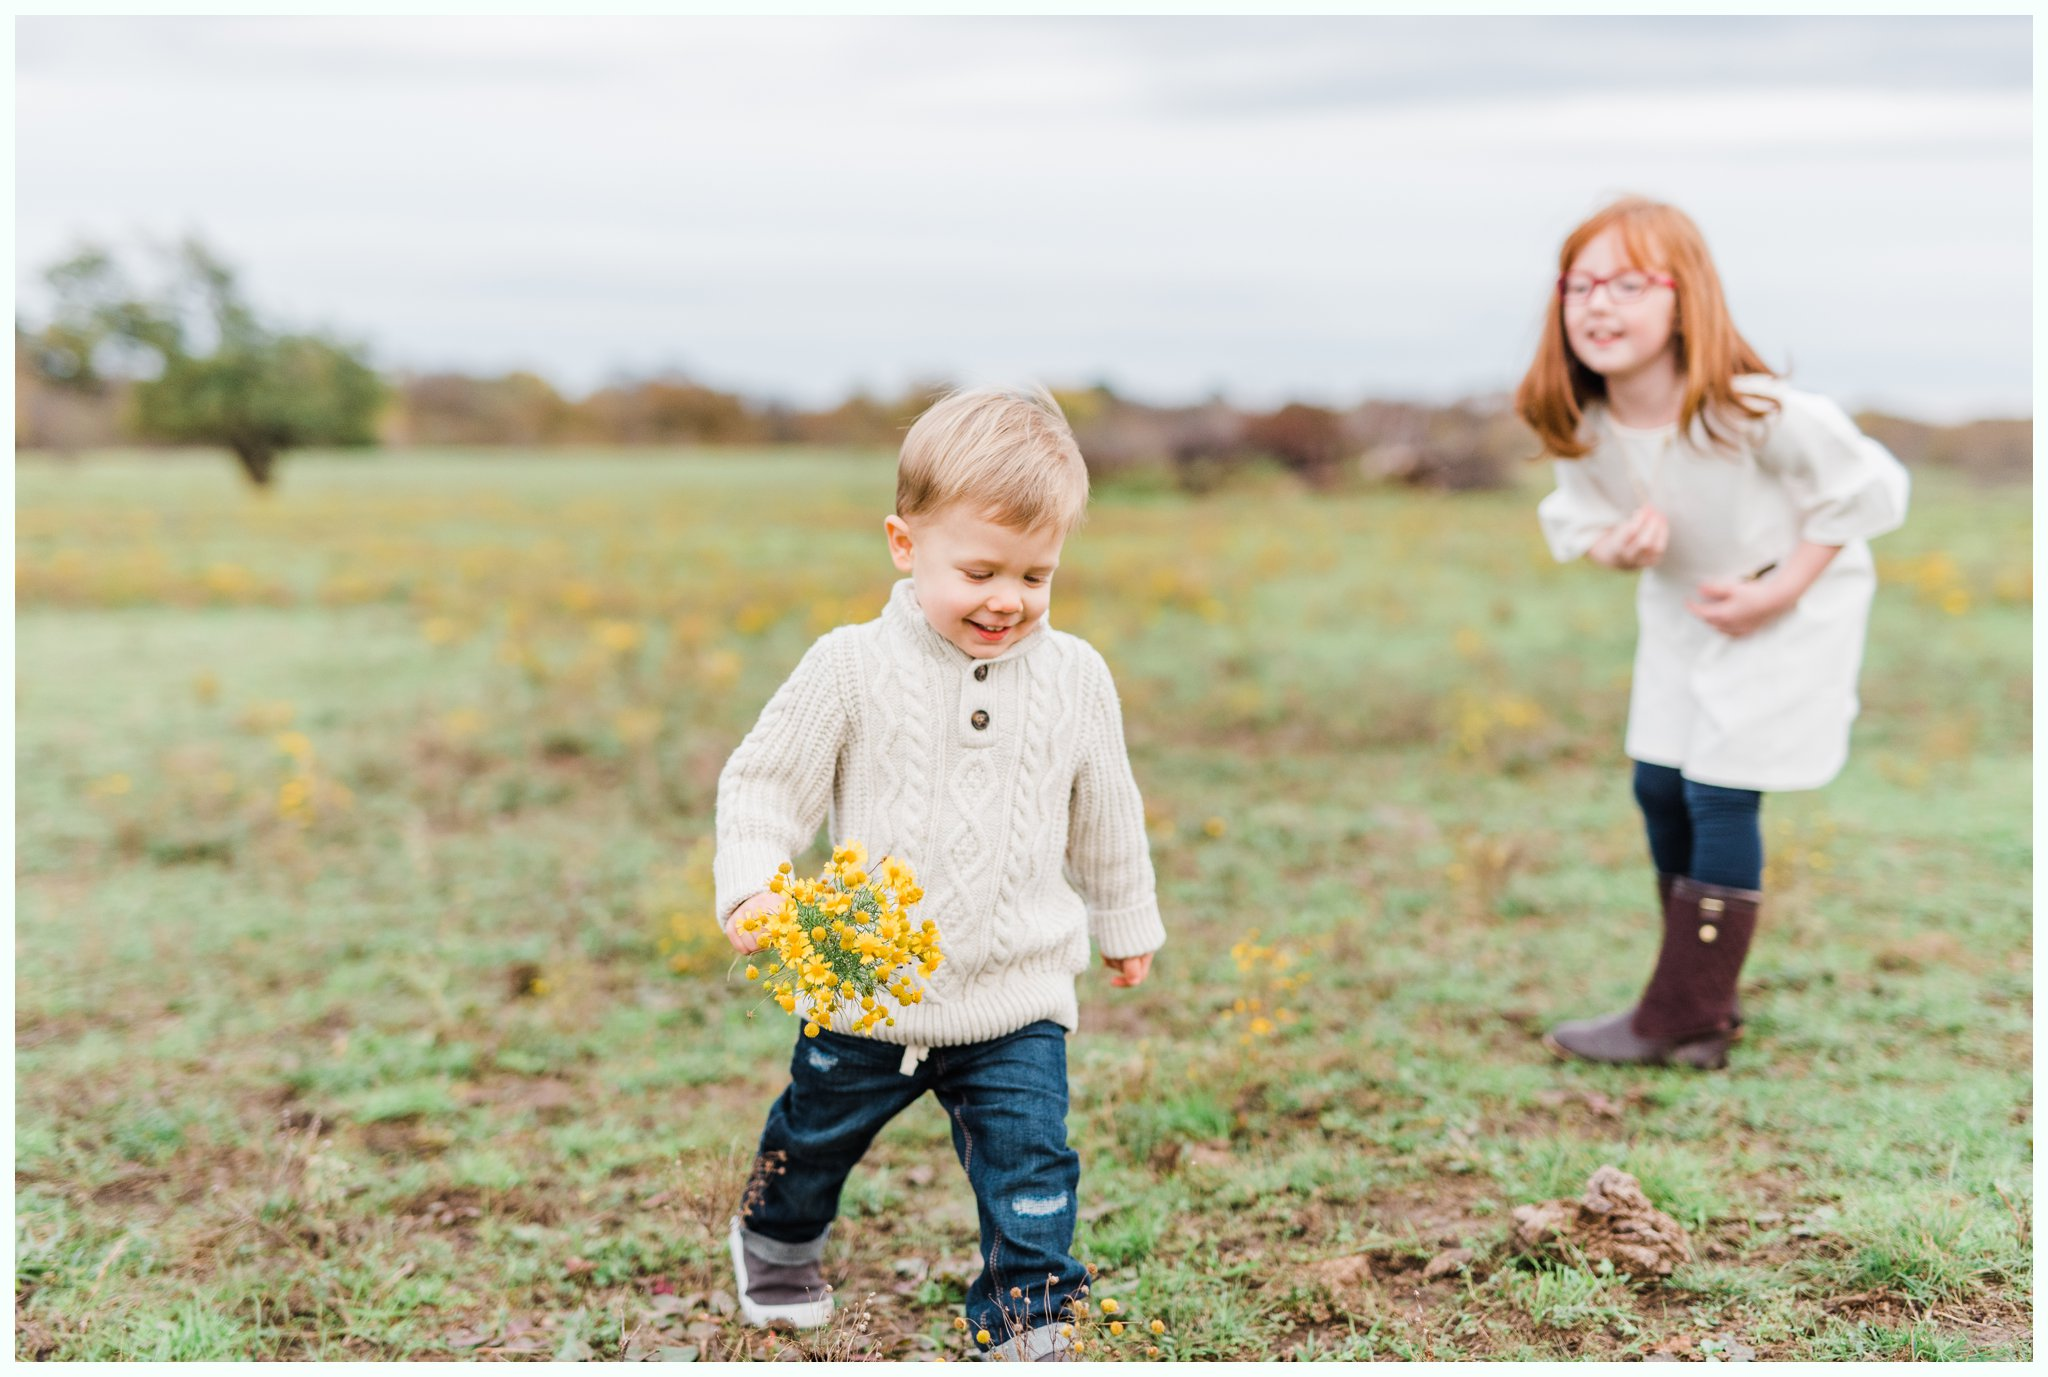 SHERMANFAMILYSESSION_3219.jpg